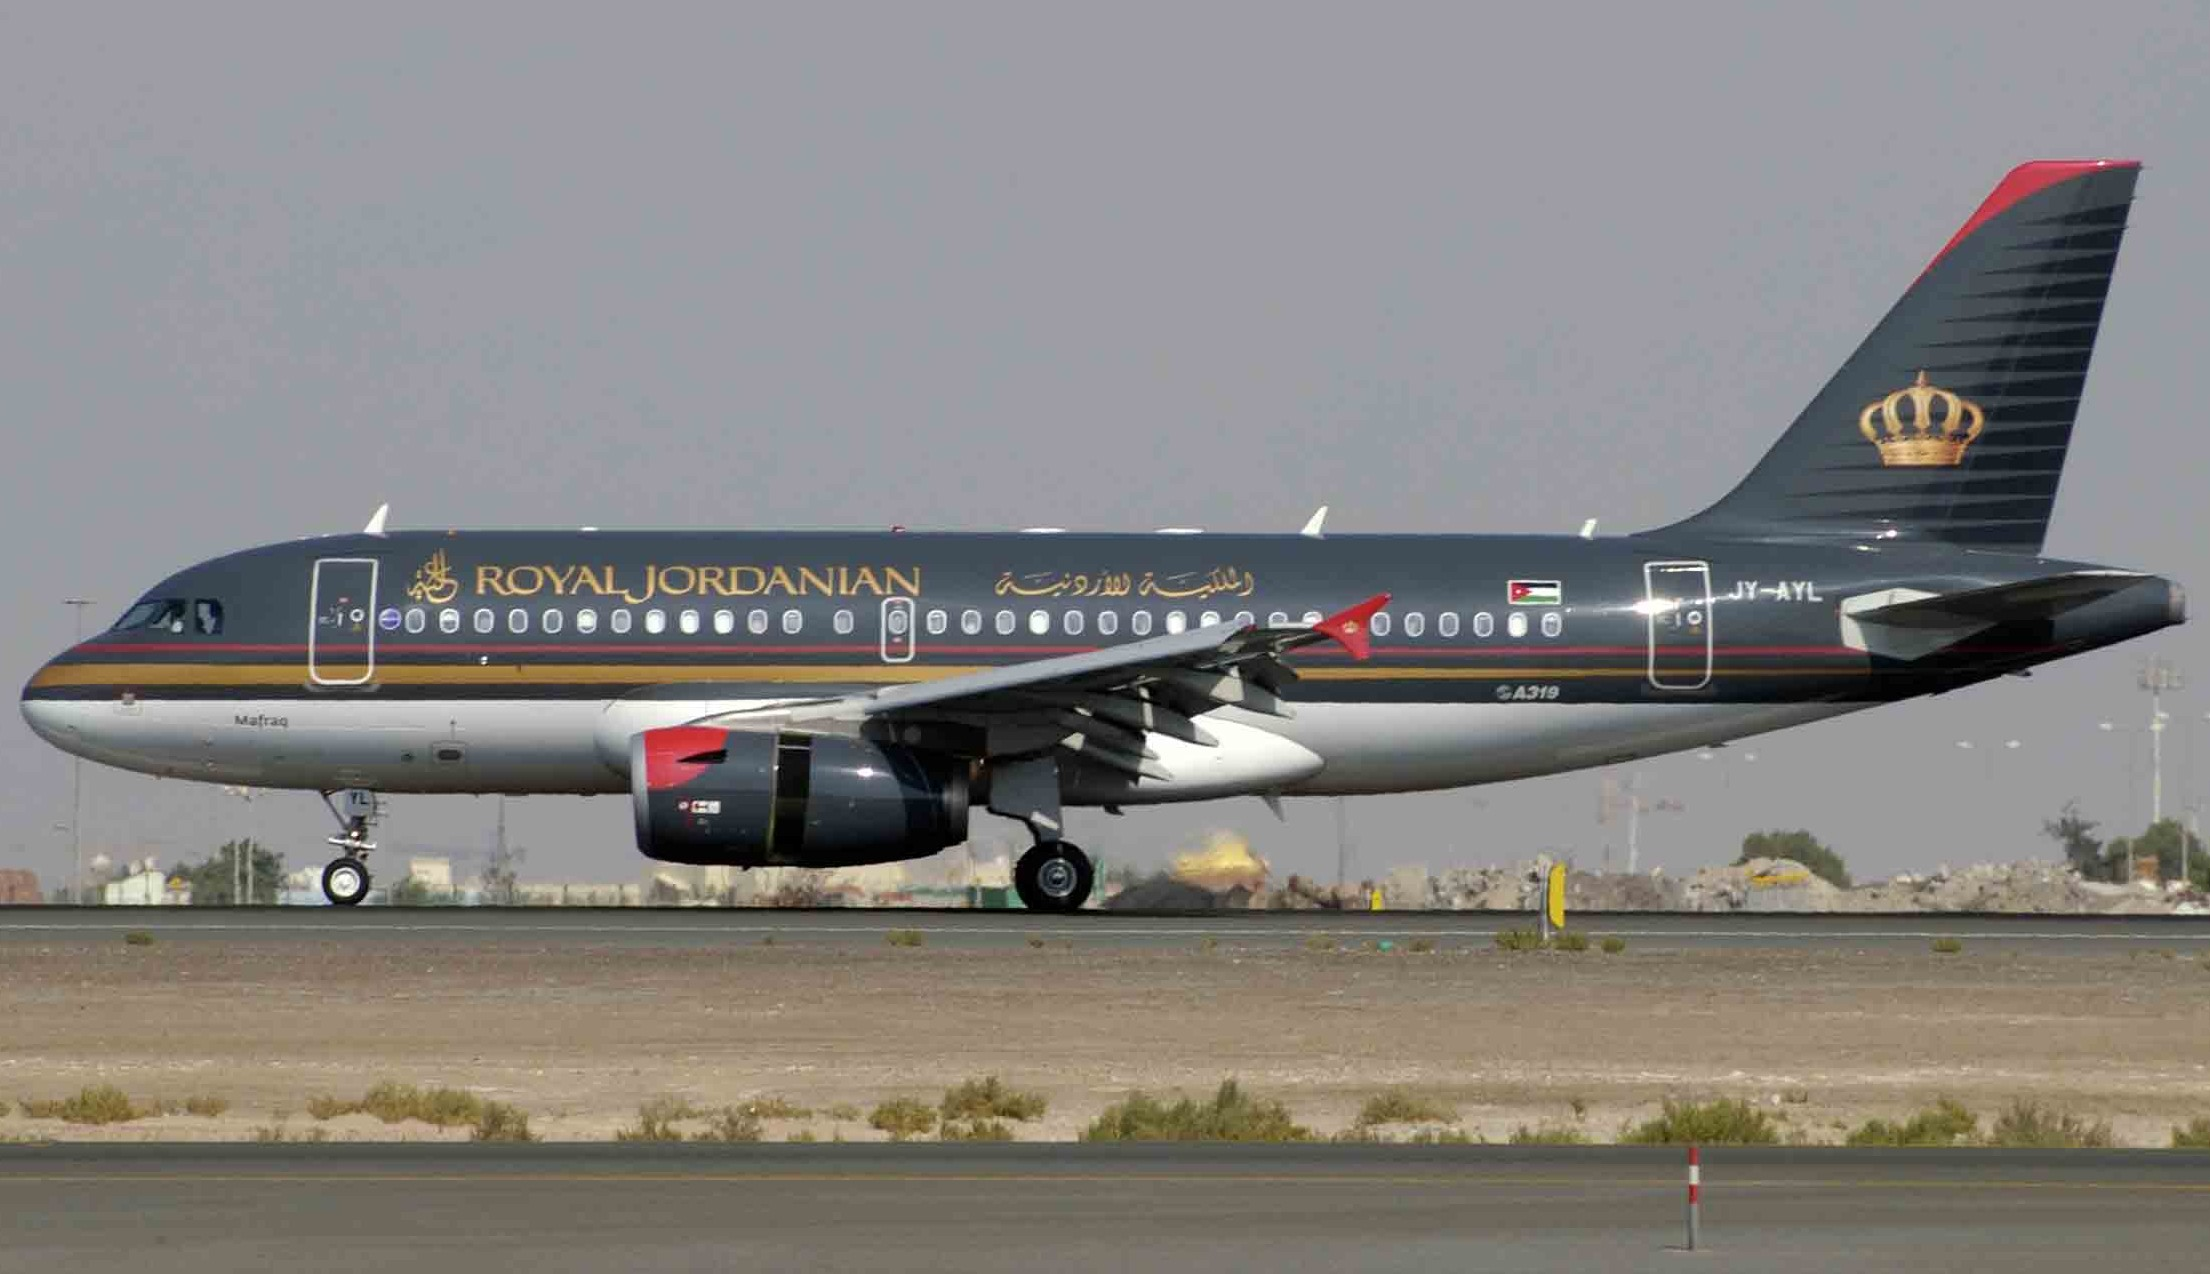 royal jordanian check in time